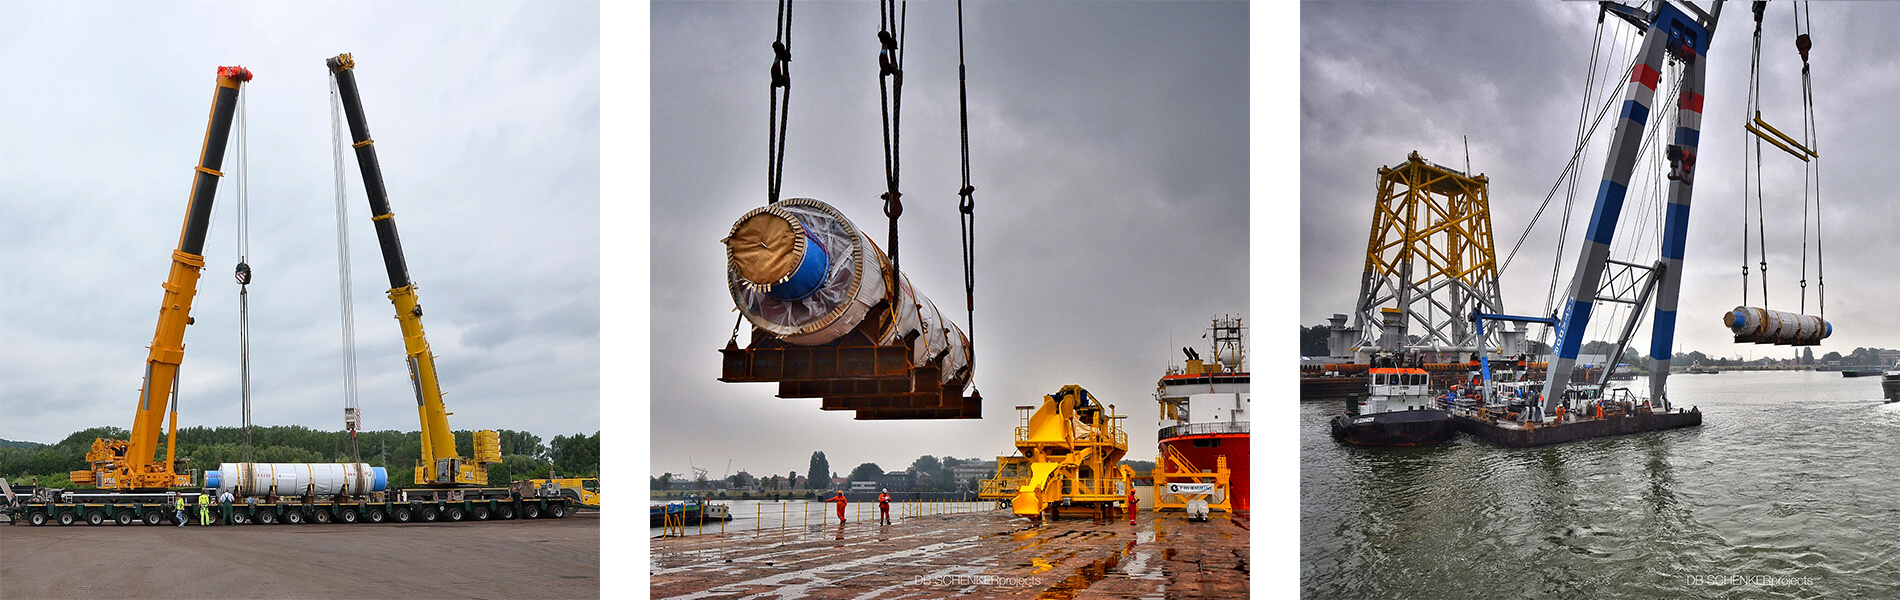 Very heavy goods: Mega-transportation project for offshore wind power